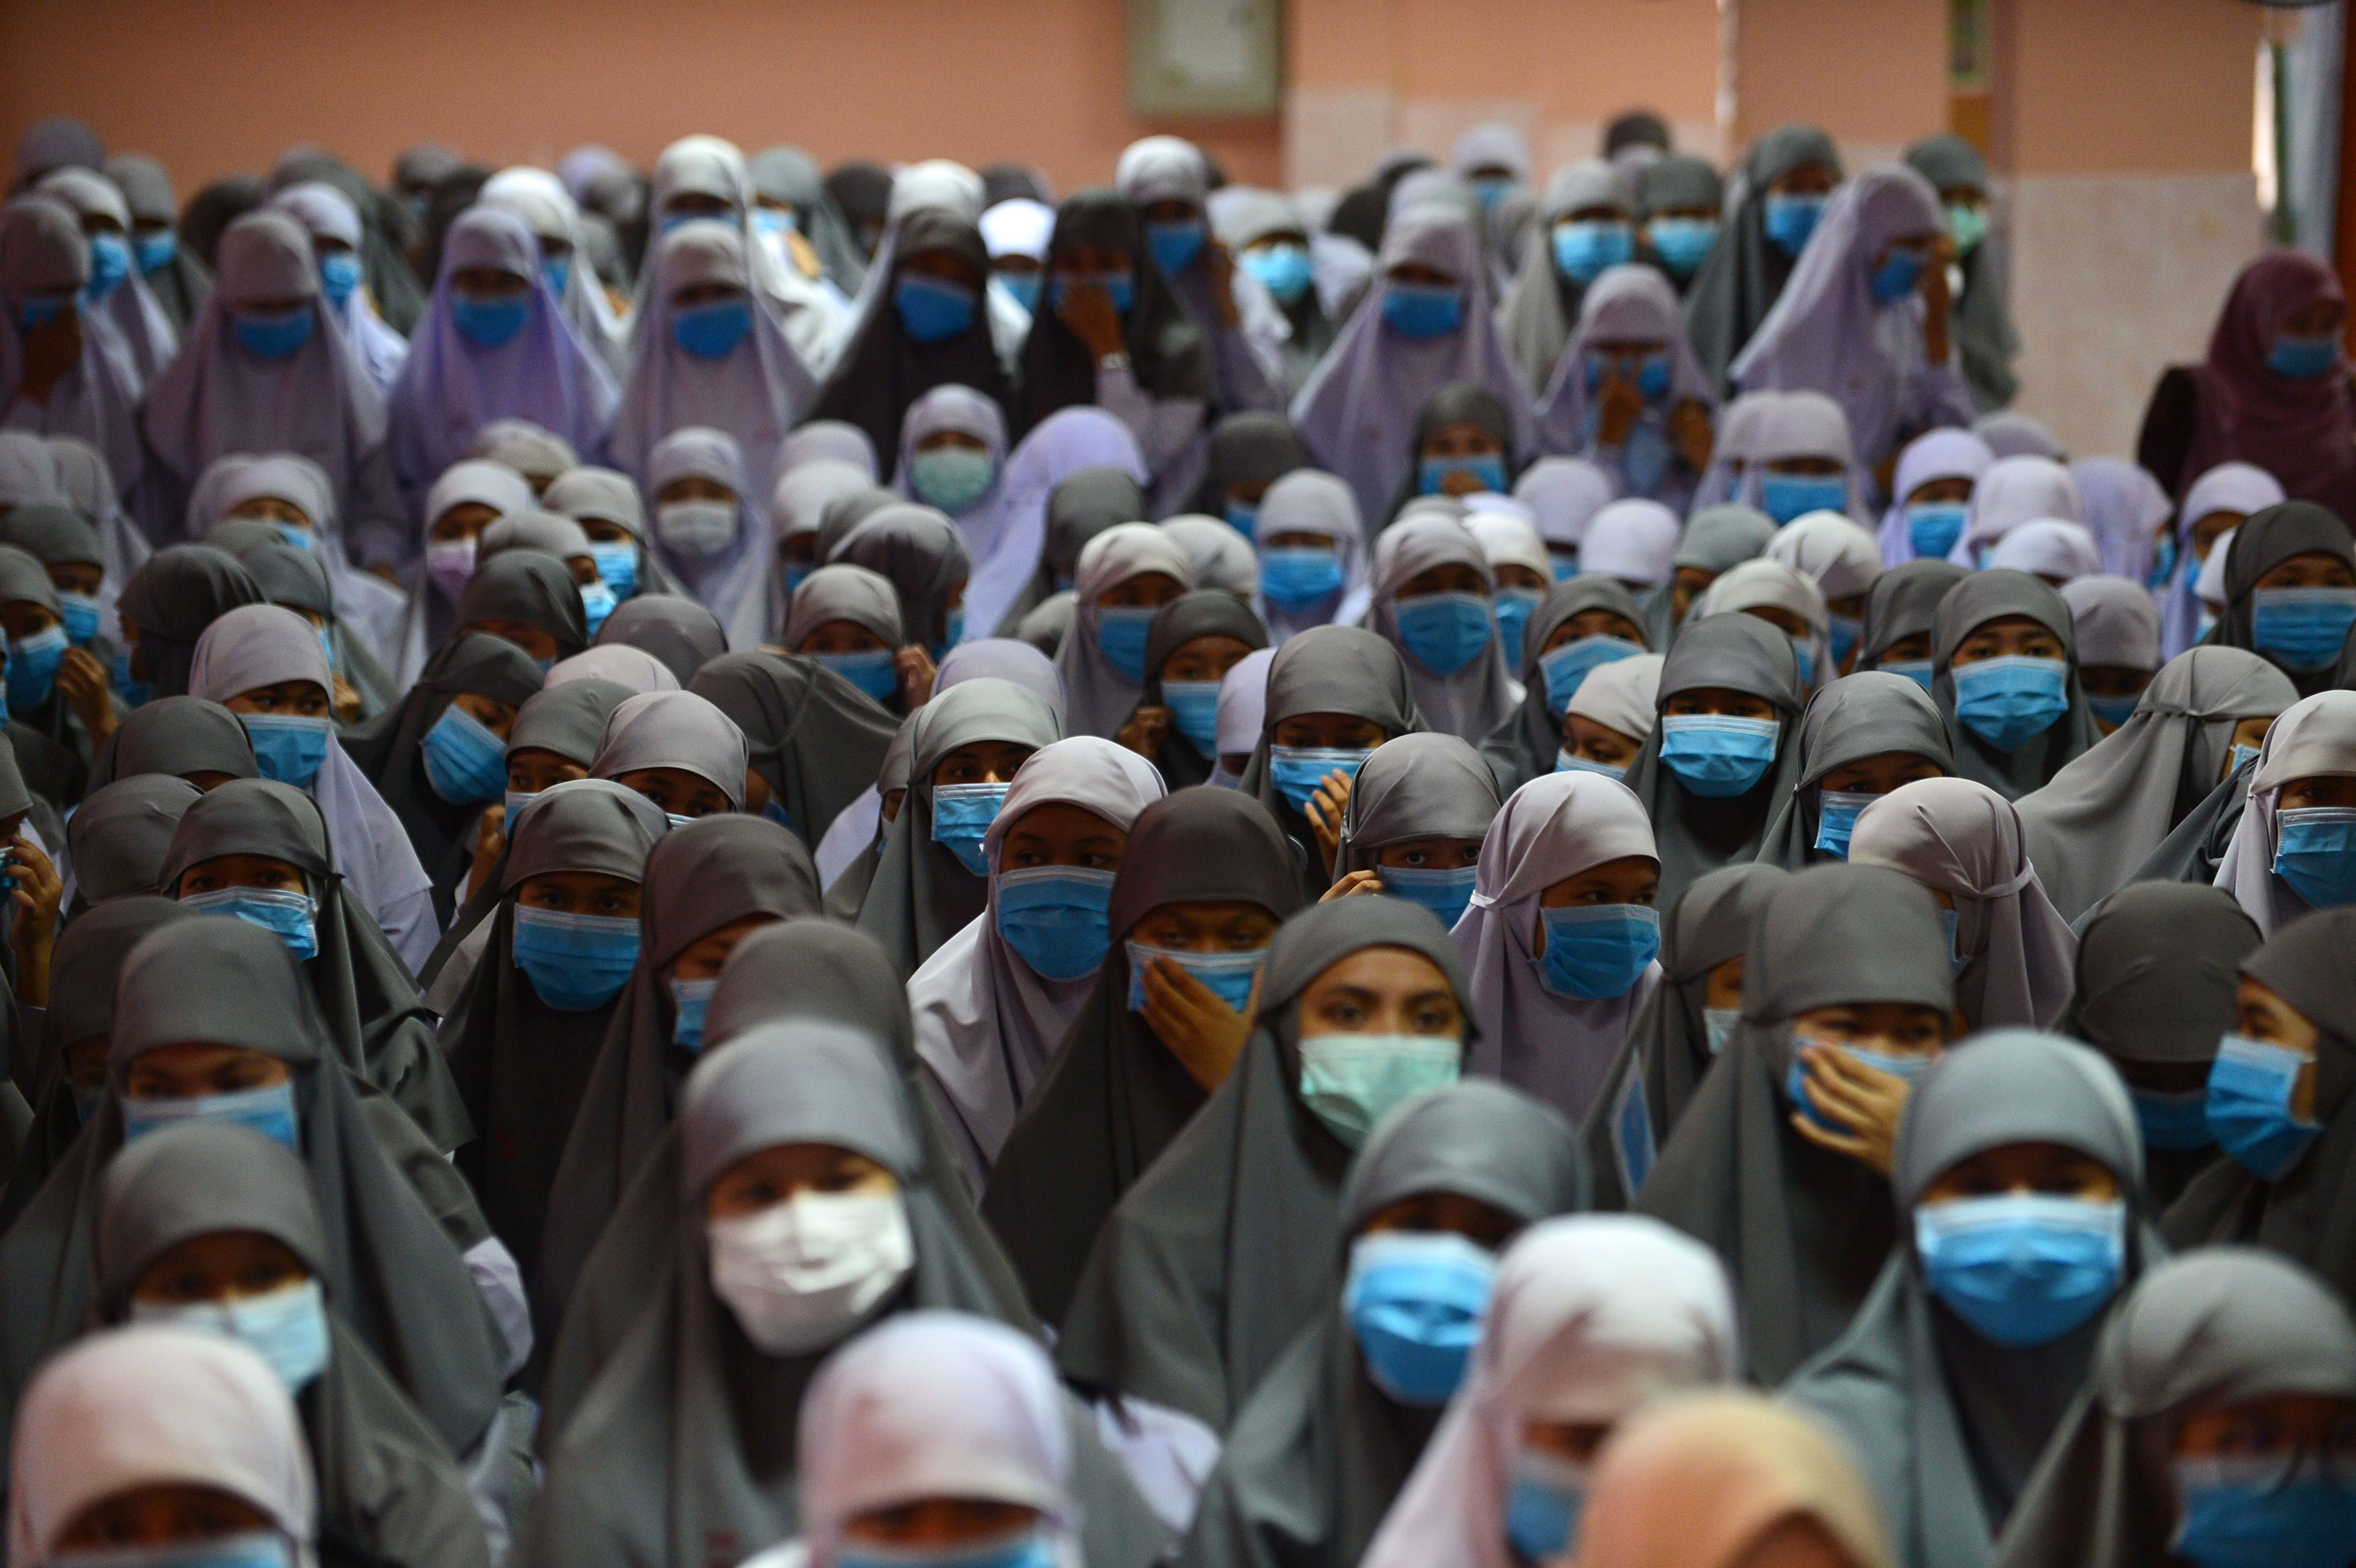 Students wear face masks during a ceremony at Attarkiah Islamic School in Narathiwat, Thailand on March 17.